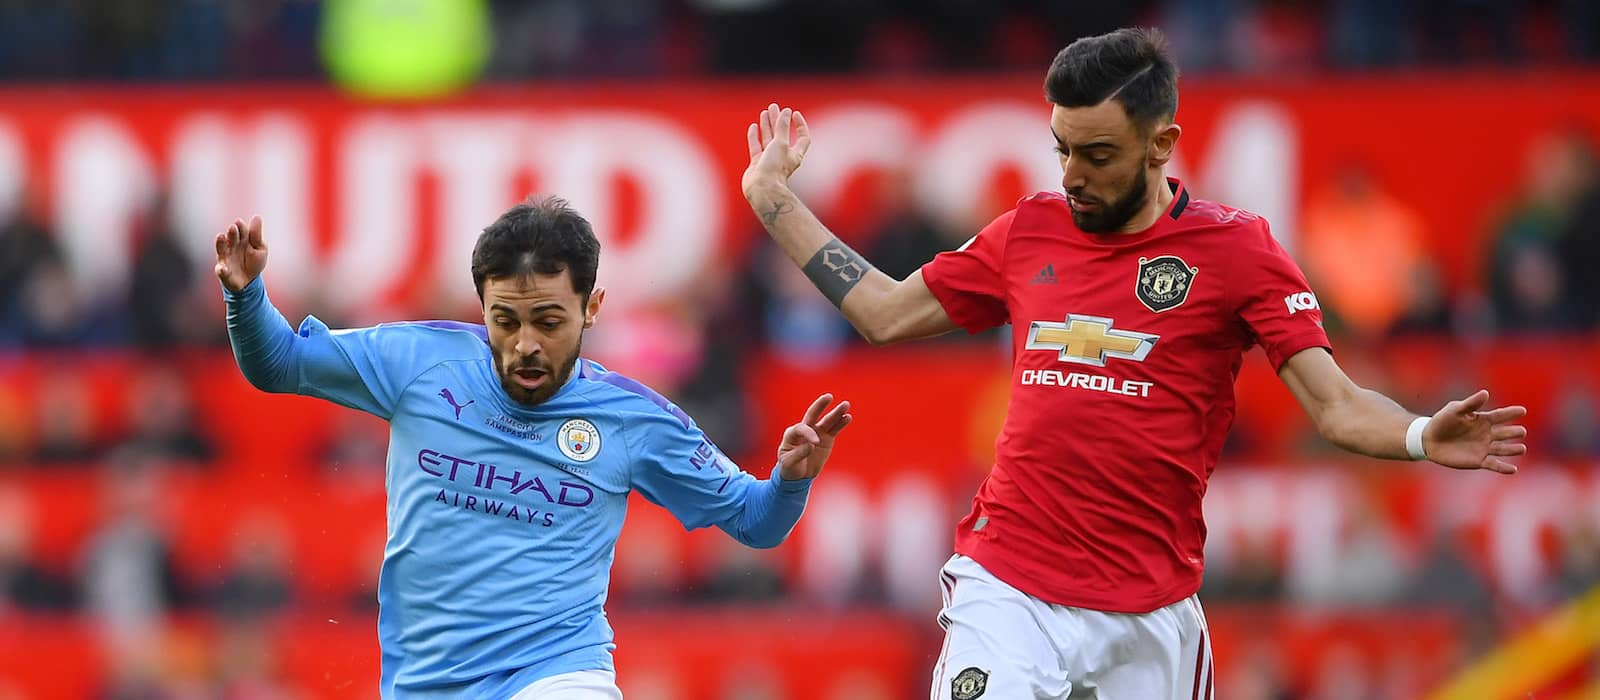 Manchester United fans delighted with Bruno Fernandes' performance vs Manchester City